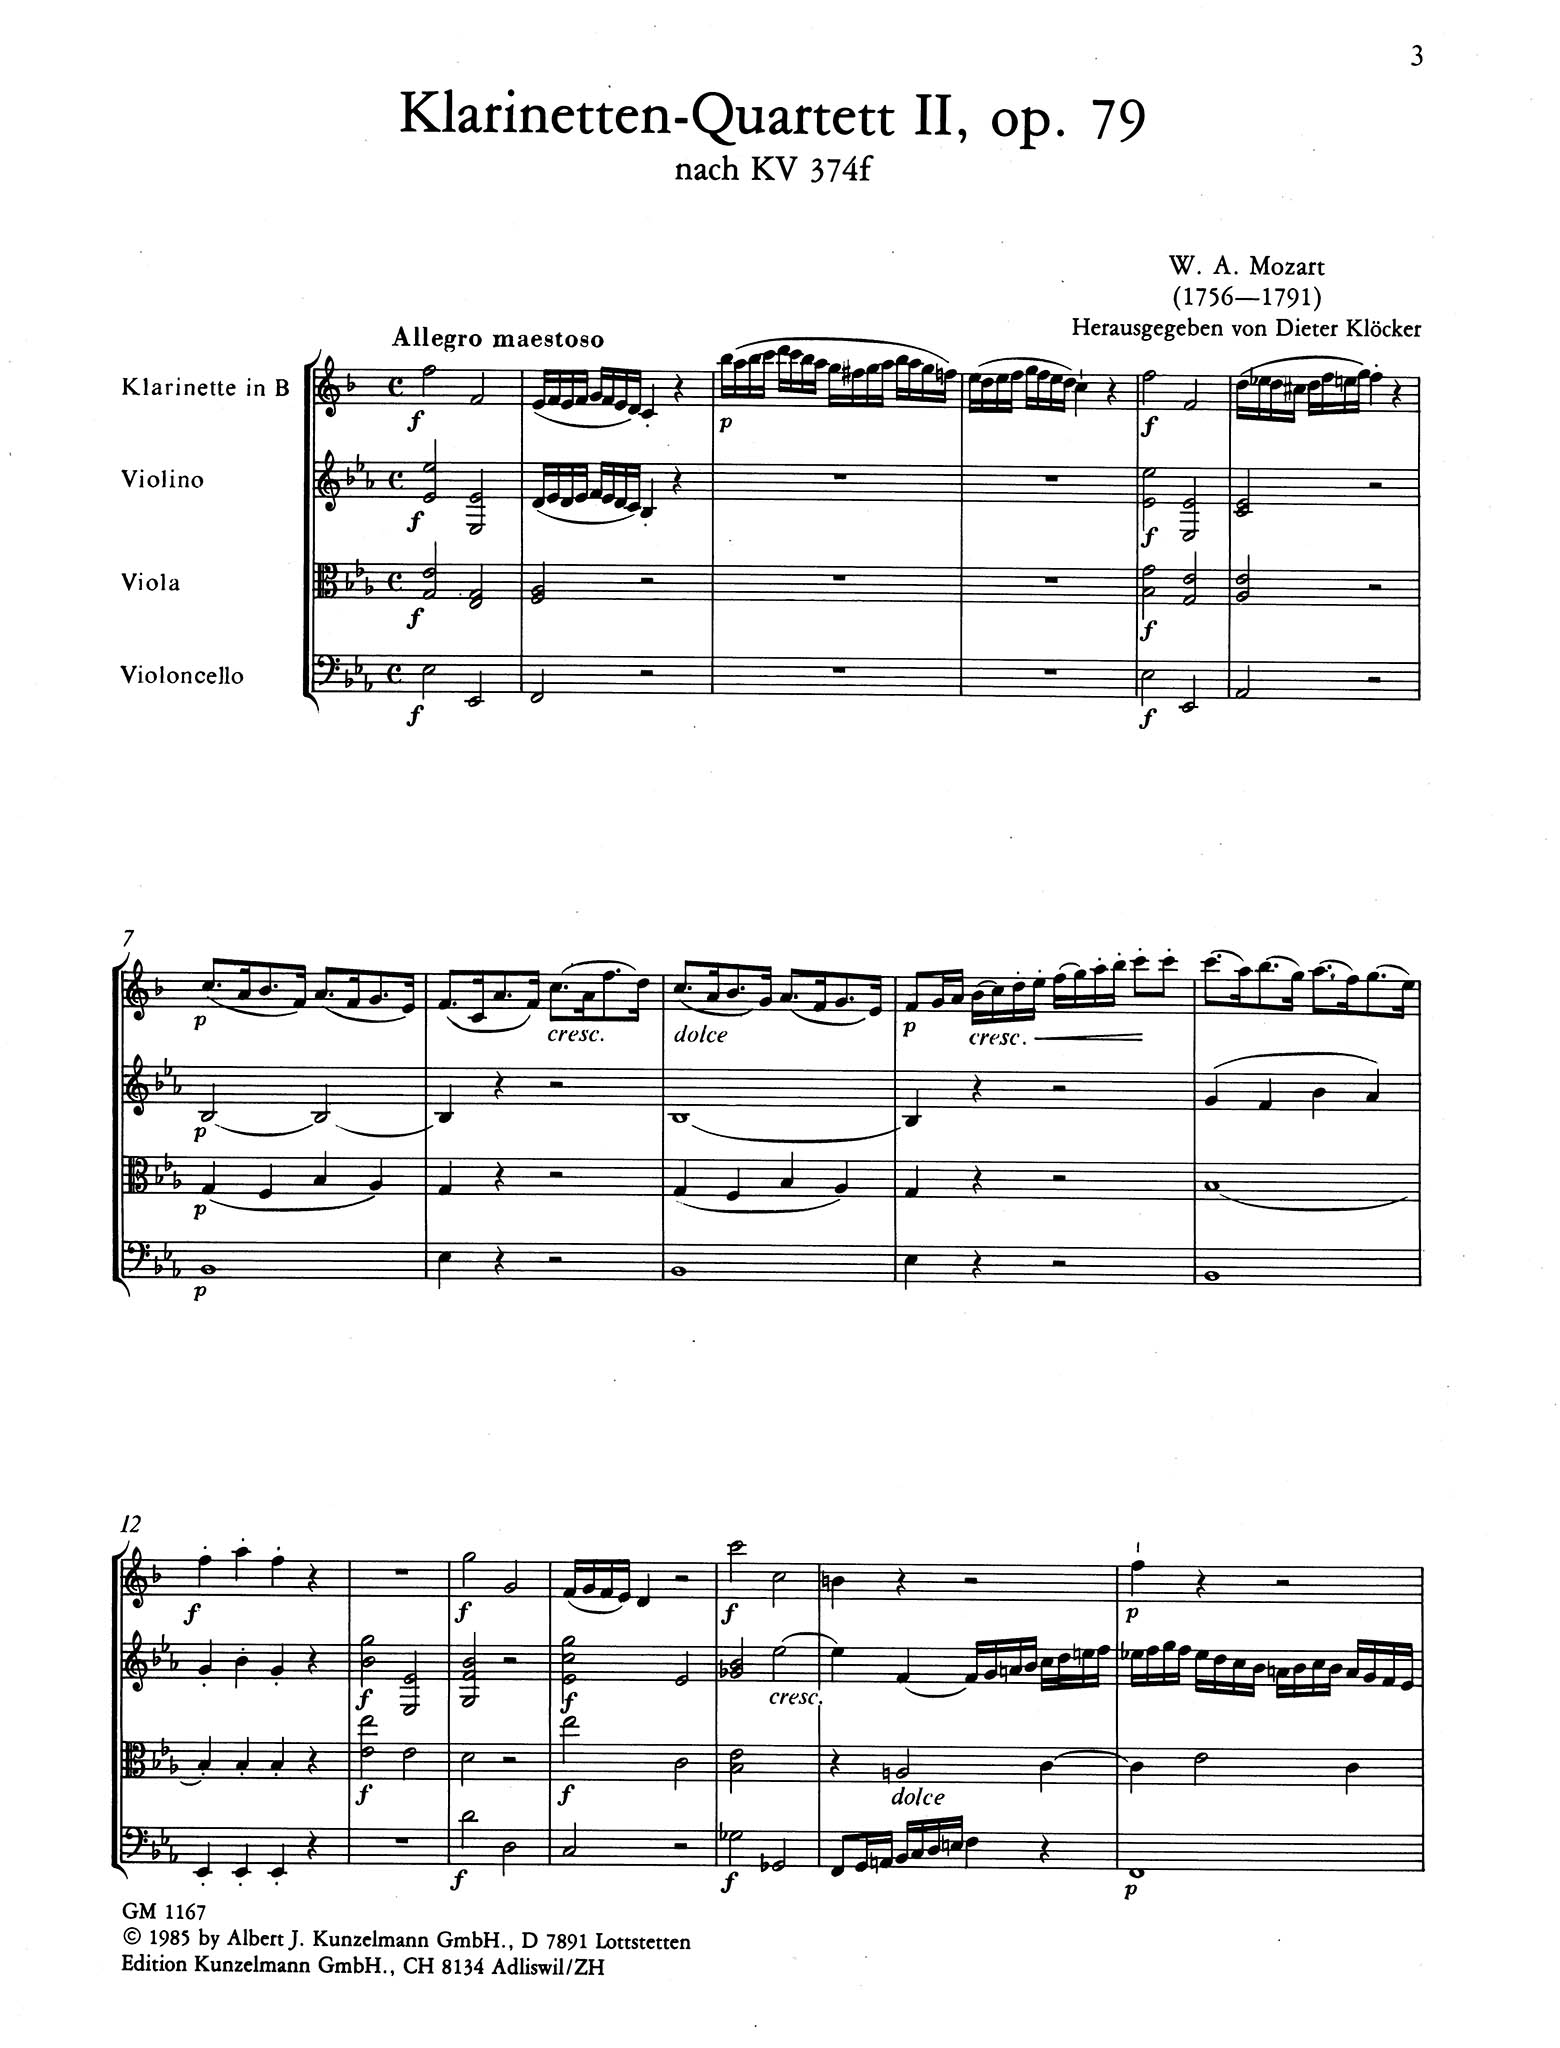 Violin Sonata in E-Flat Major, K. 380/374f - Movement 1